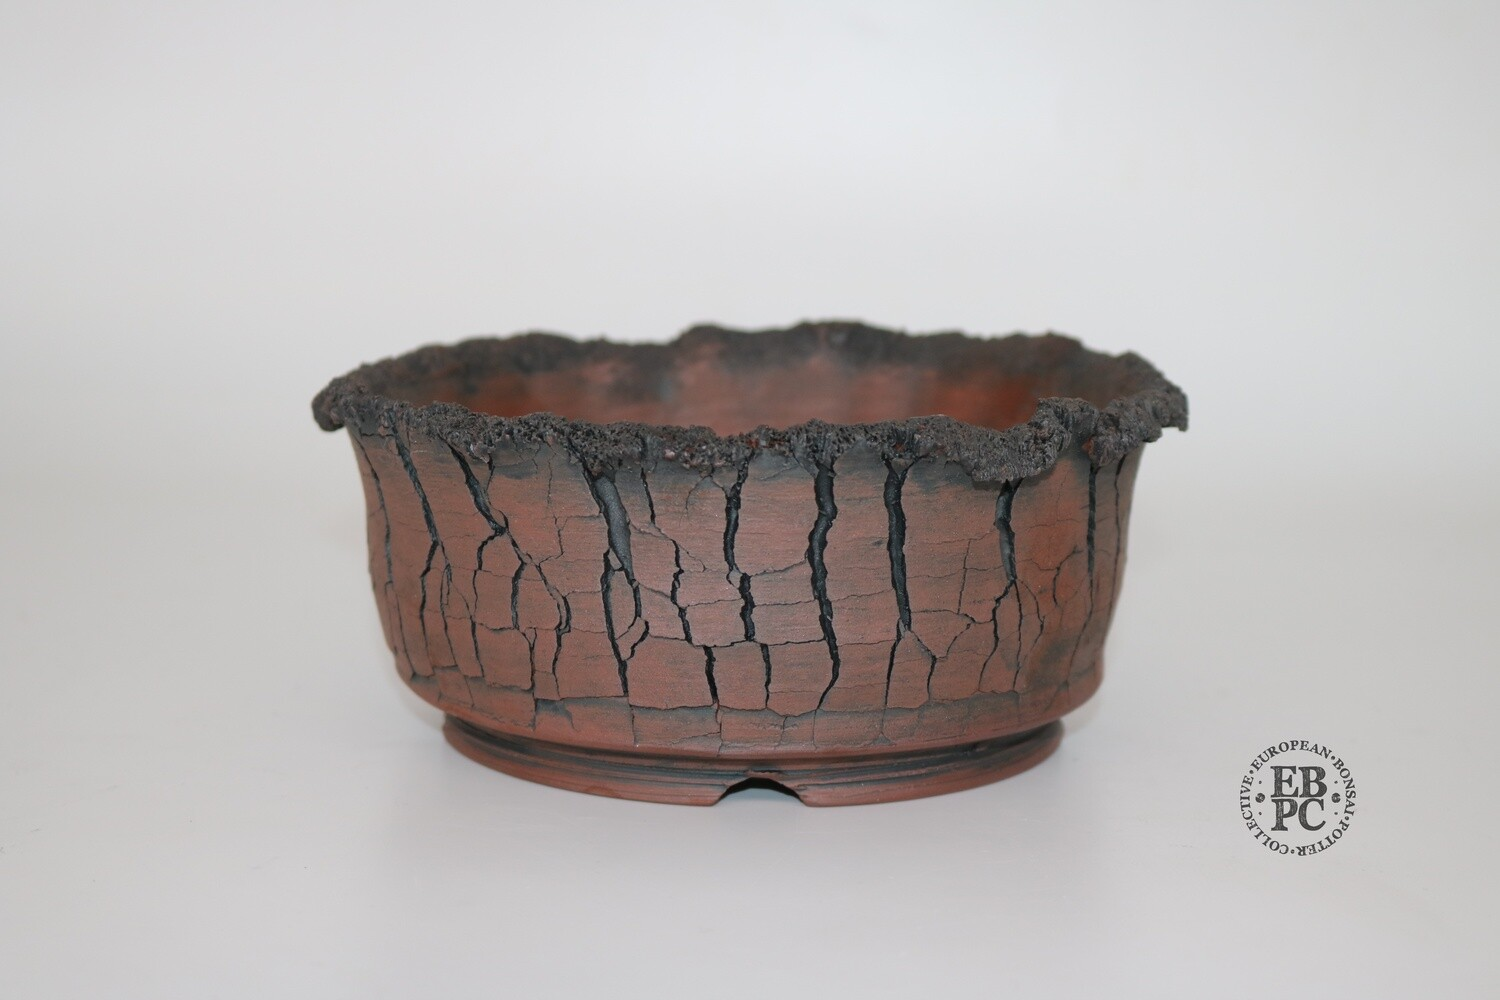 SOLD - Paul Rogers Ceramics - 17.2cm; Unglazed; Round; Crackle Finish; Decaying Lip Detail; Browns; Charcoal; EBPC Stamped;